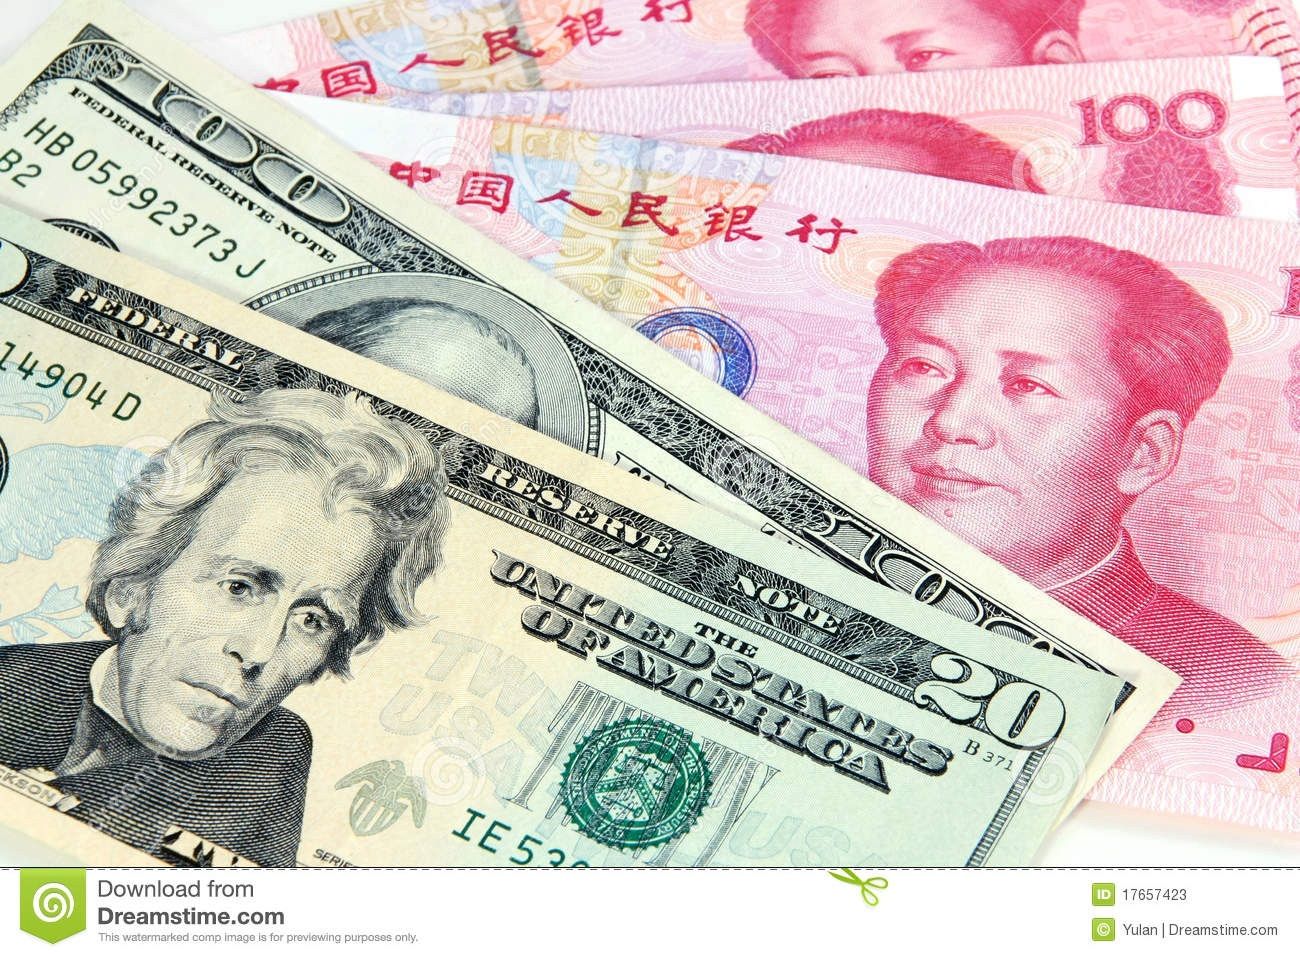 us-dollar-vs-chinese-rmb-17657423